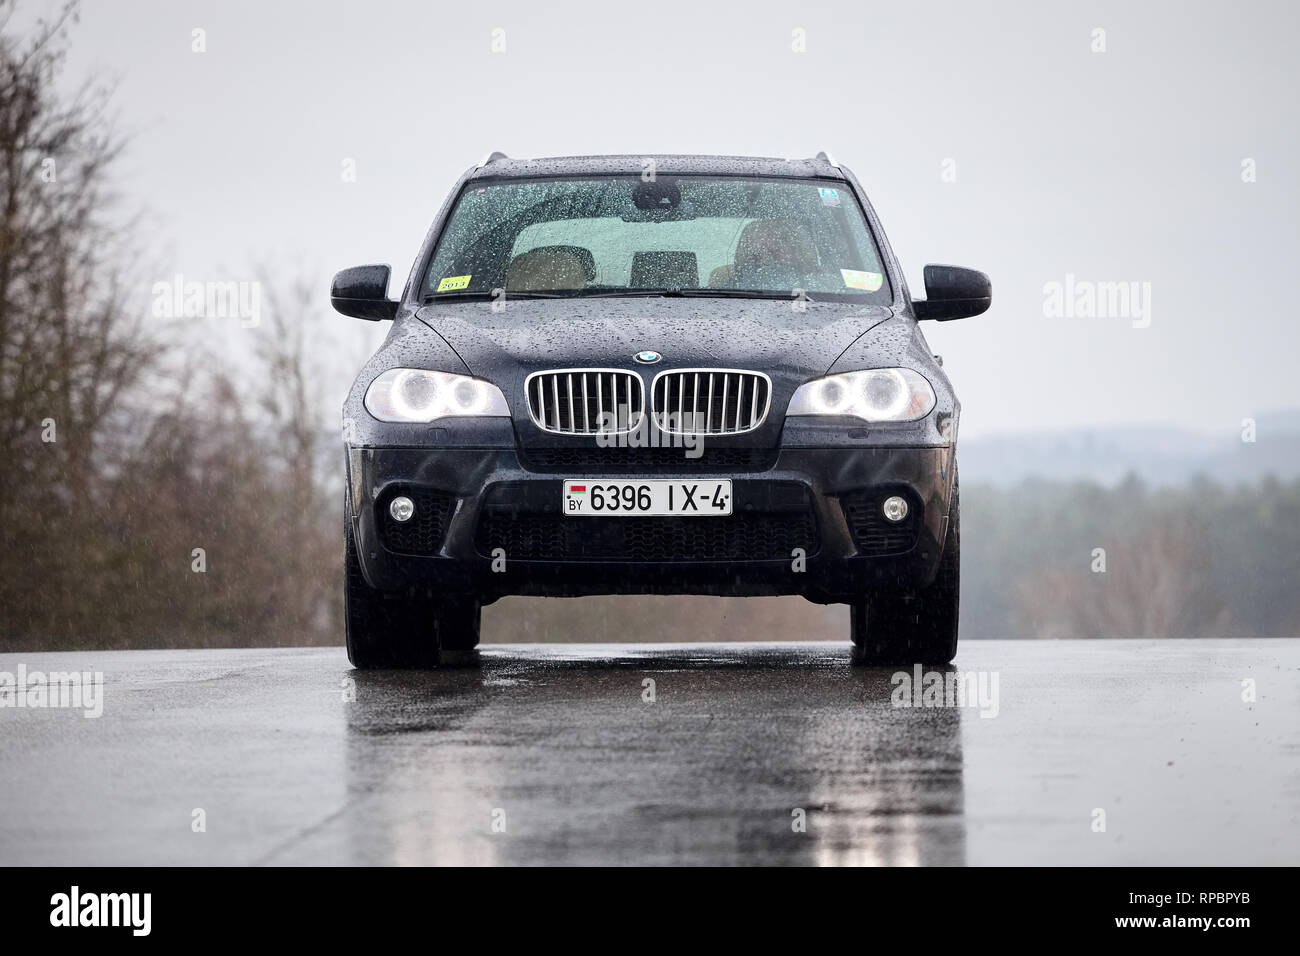 GRODNO, BELARUS - OCTOBER 2016: BMW X5 front view with glowing headlights standing on wet asphalt under rain covered with raindrops over gray rainy sk - Stock Image